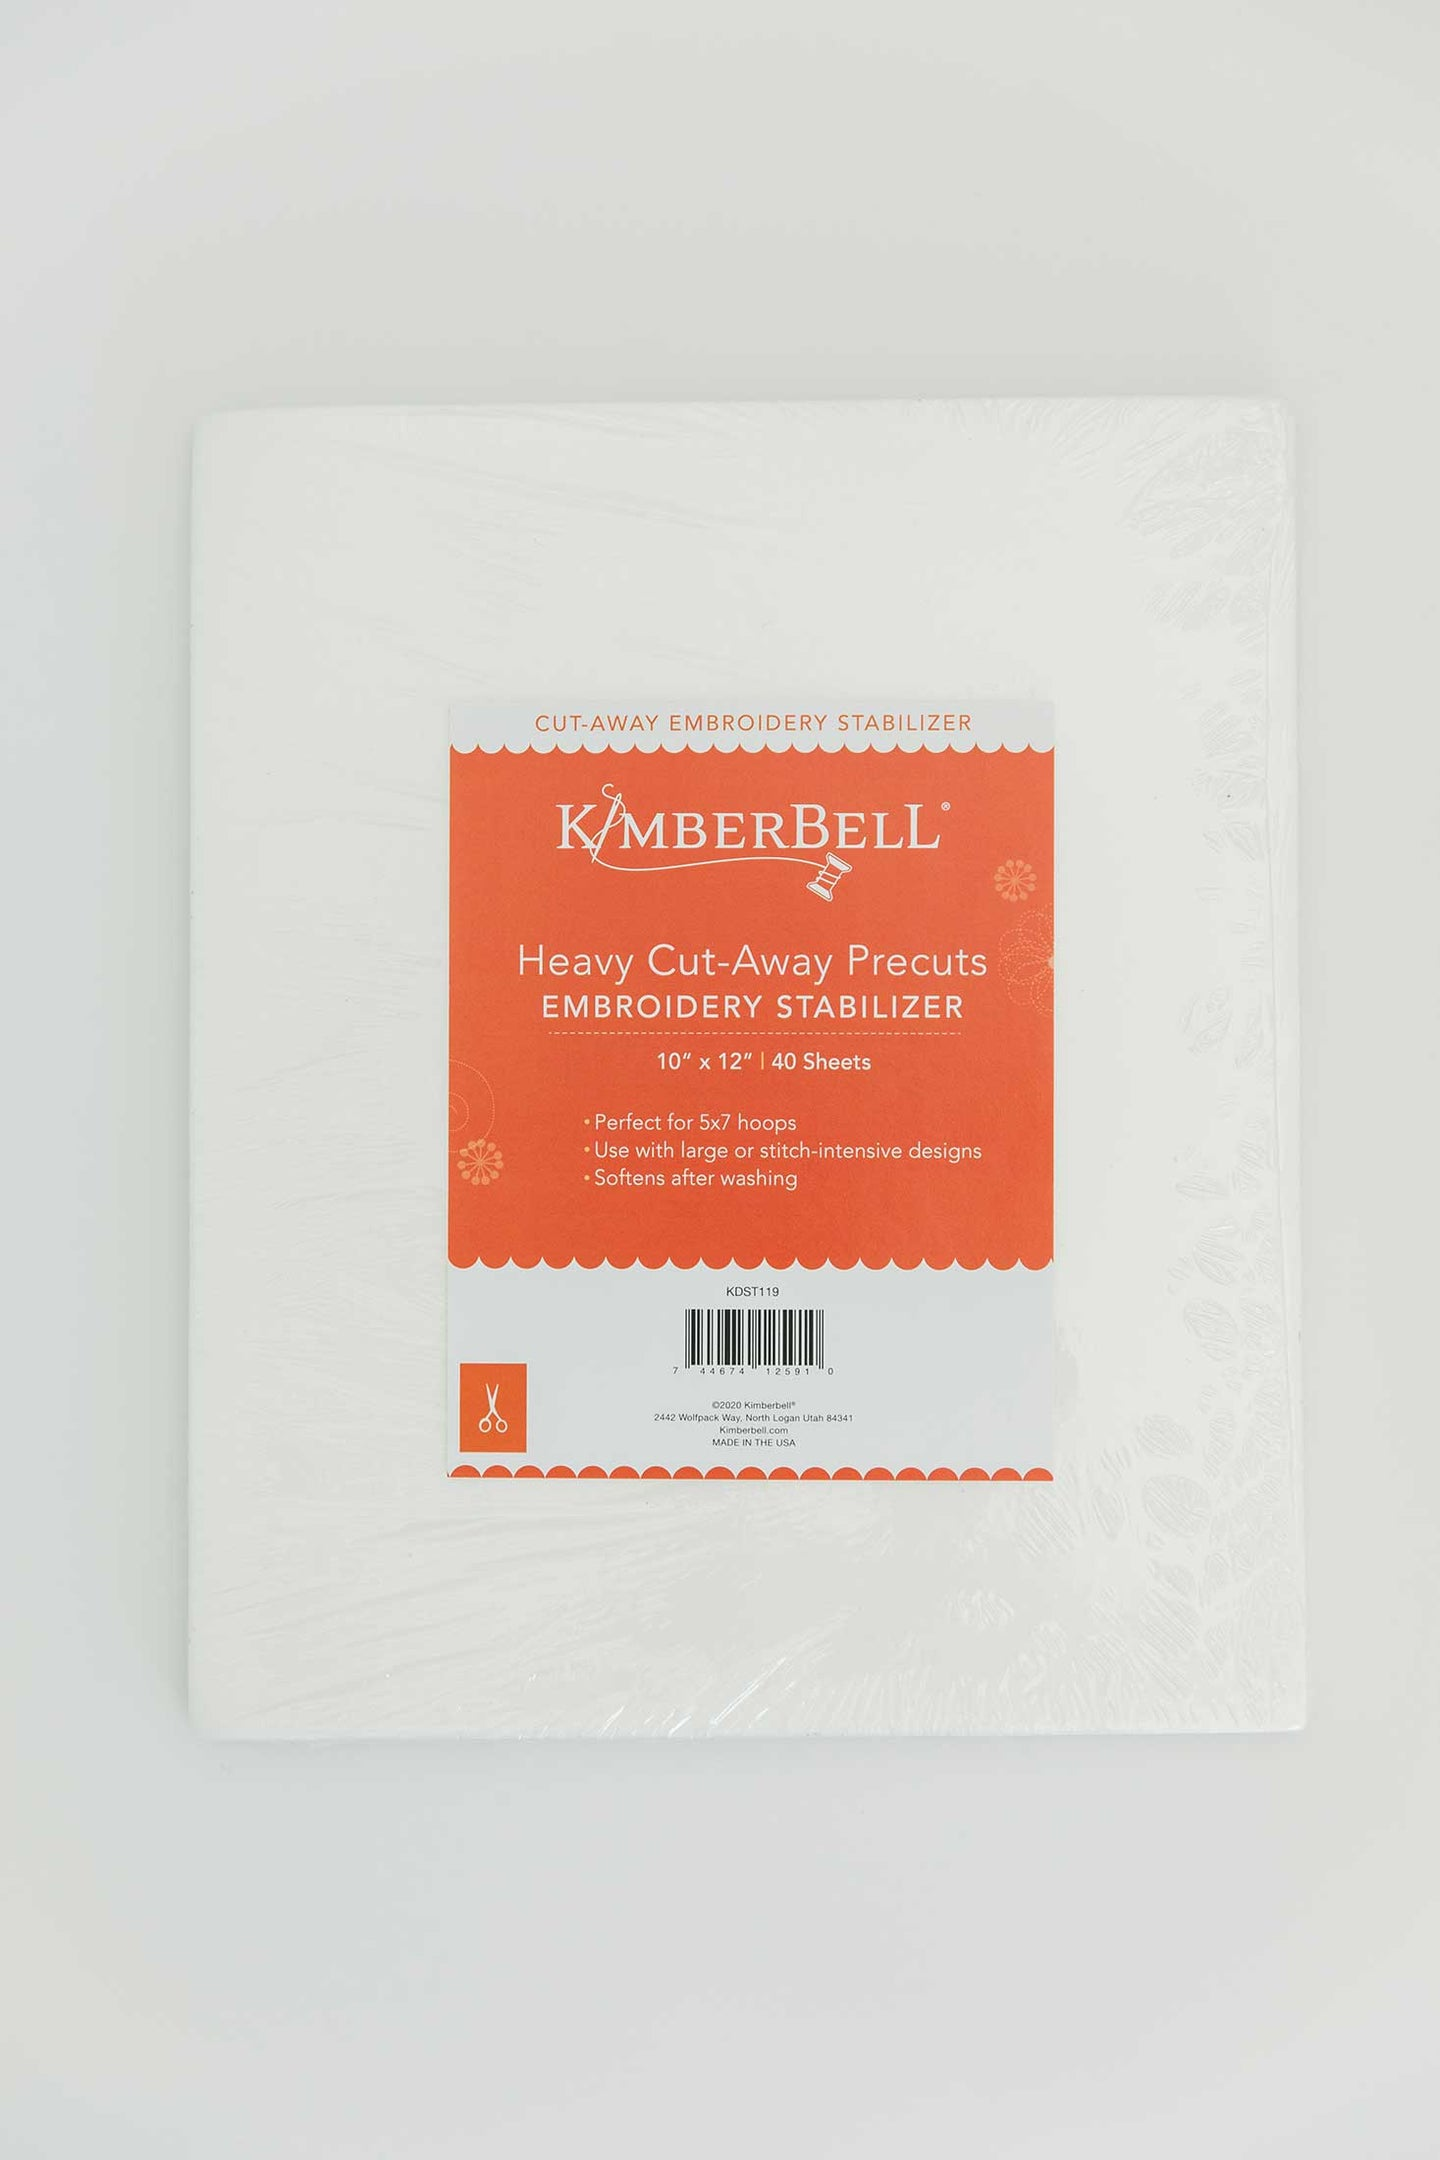 Kimberbell Cut Away Heavy PRECUT Stabilizer